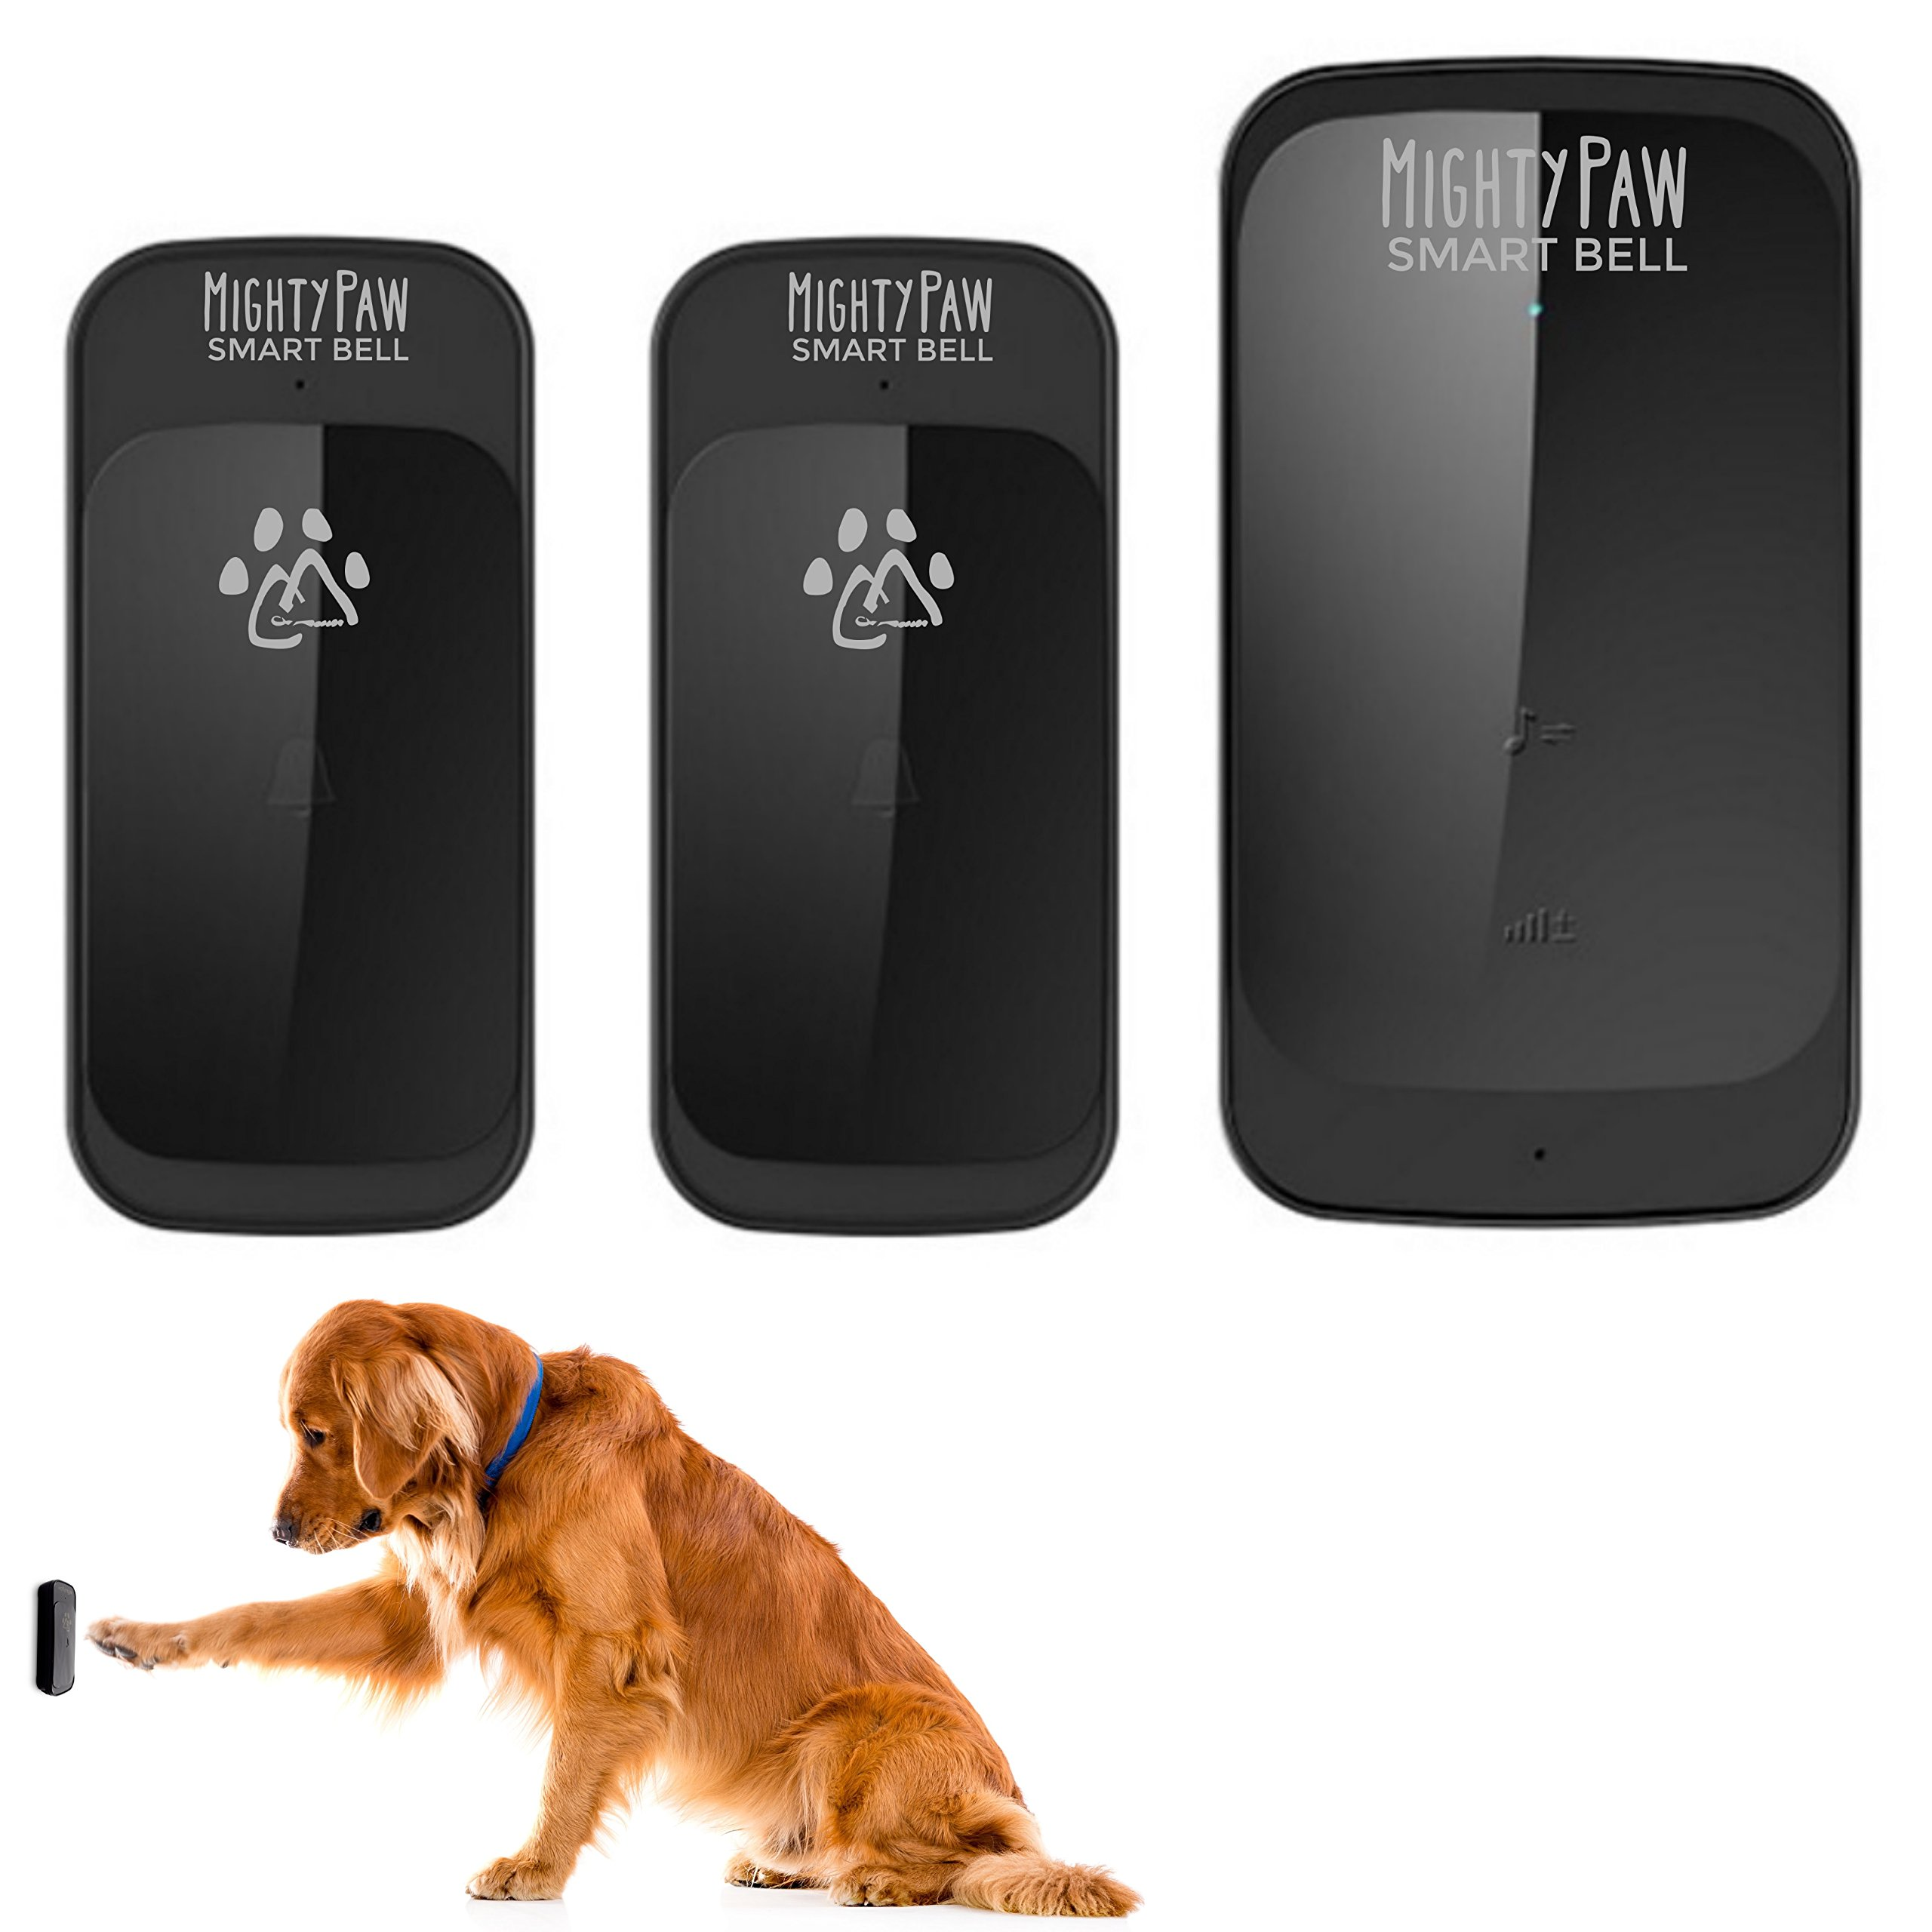 Mighty Paw Smart Bell Wireless Dog Doorbell Potty Bell for Dogs Waterproof wi